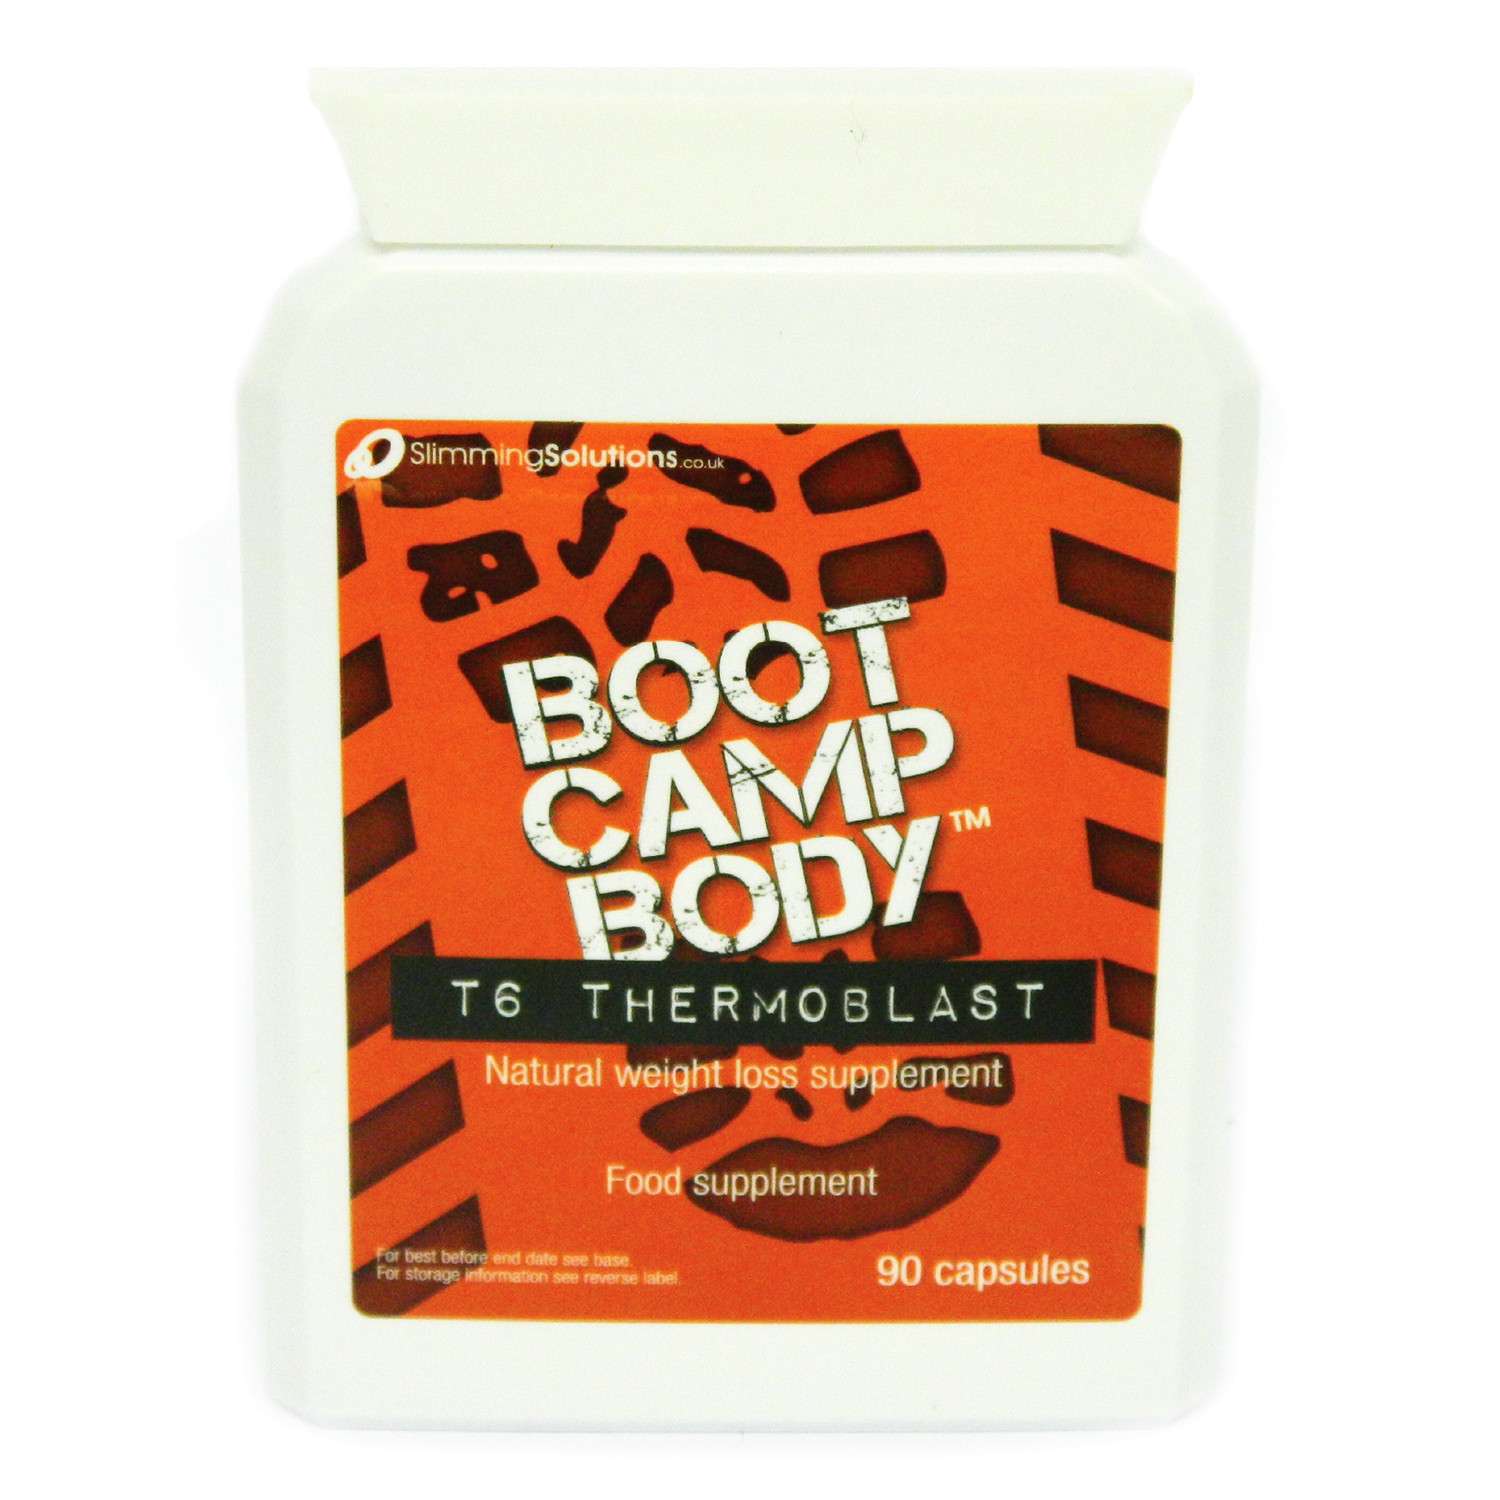 3 Step Boot Camp Body Programme - Option 2